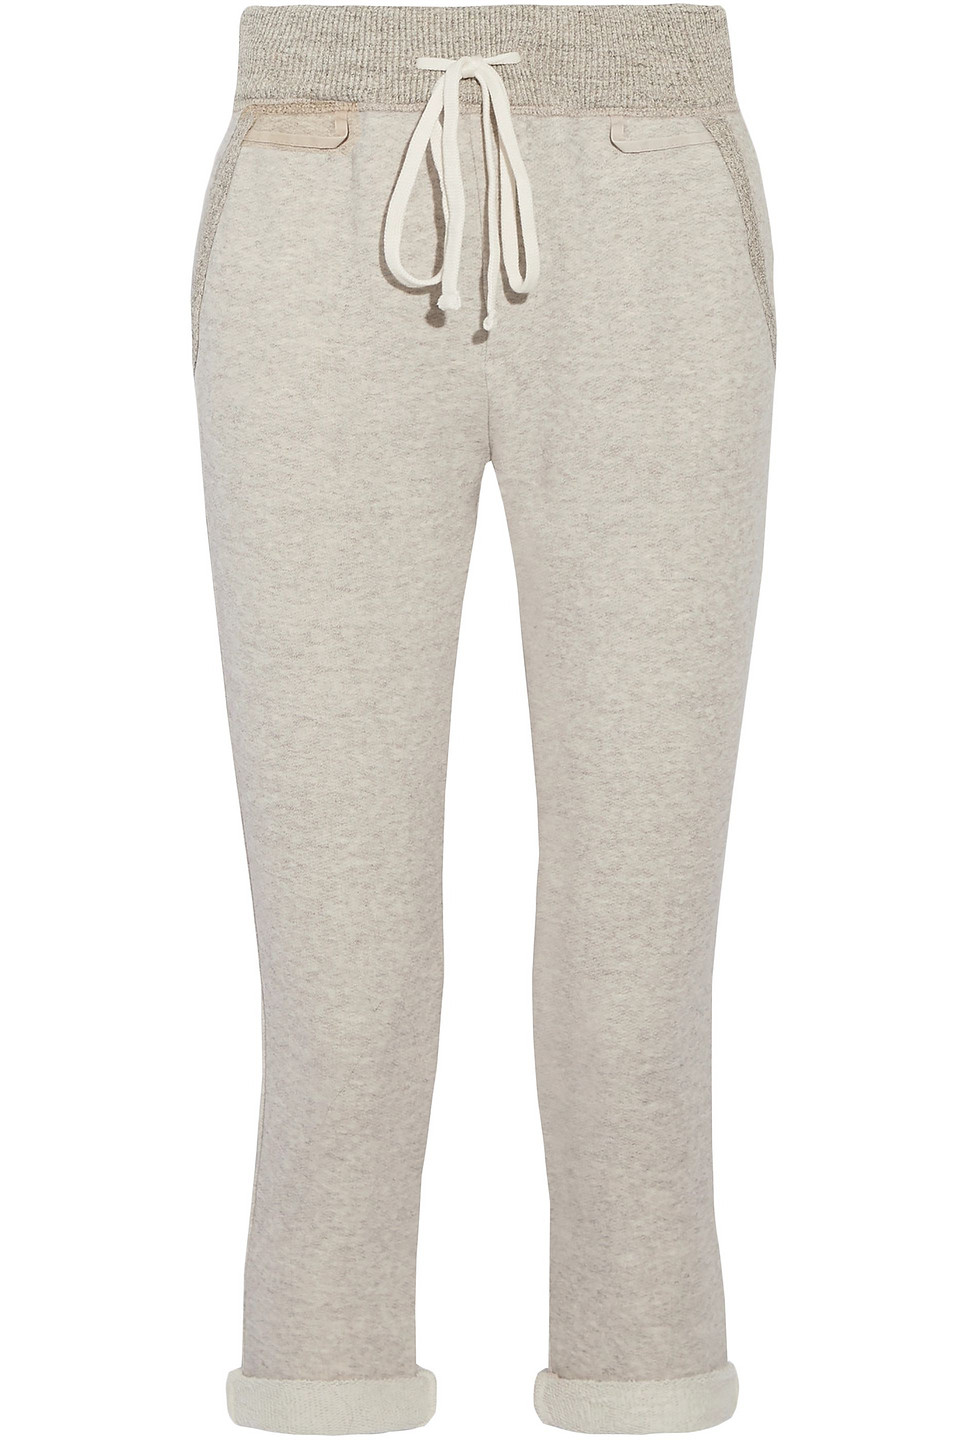 James Perse | James Perse Woman Cotton-blend Terry Track Pants Neutral | Clouty